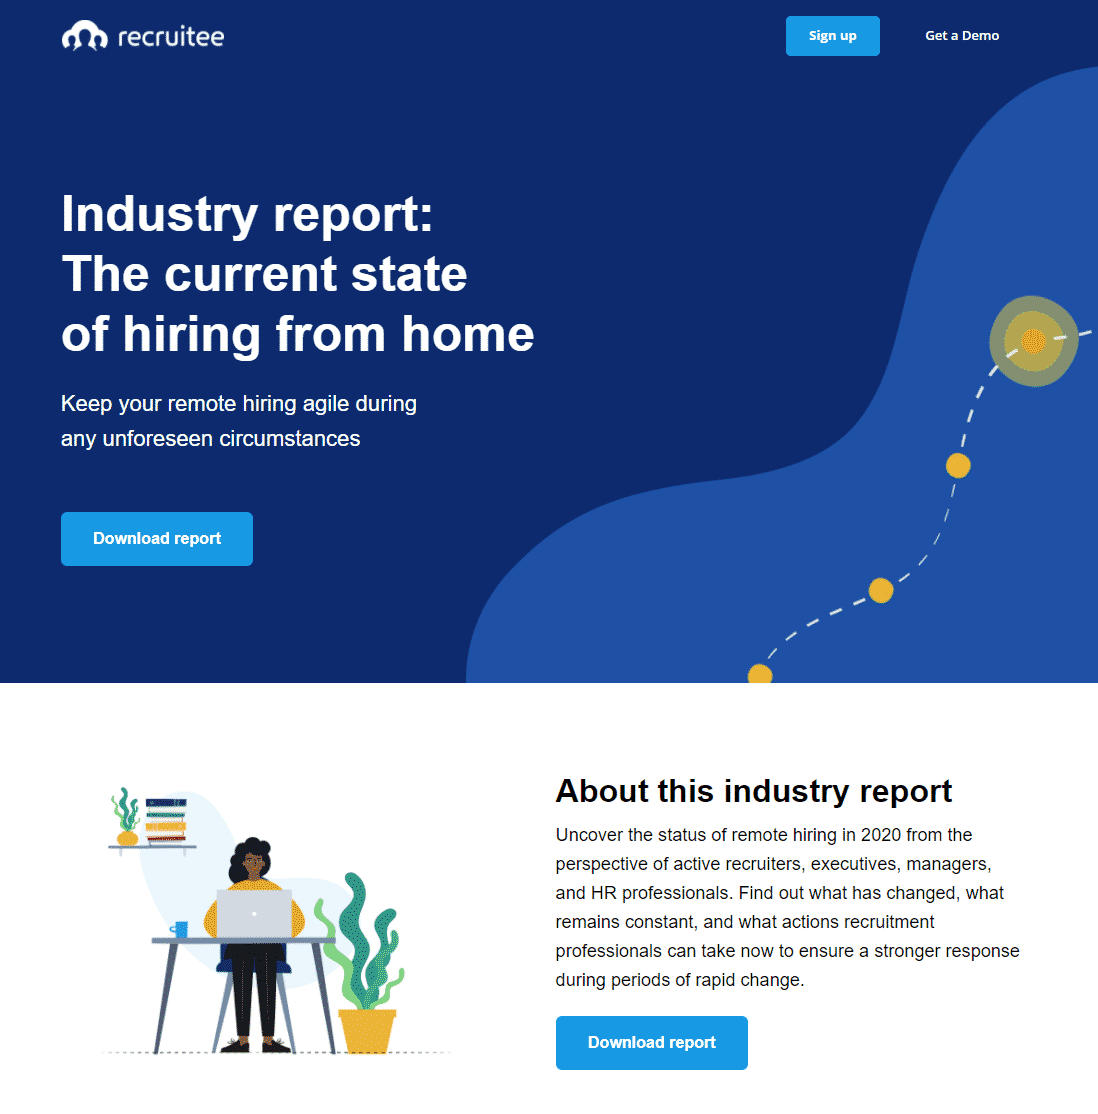 2. Recruitee - Industry report - The current state of hiring from home